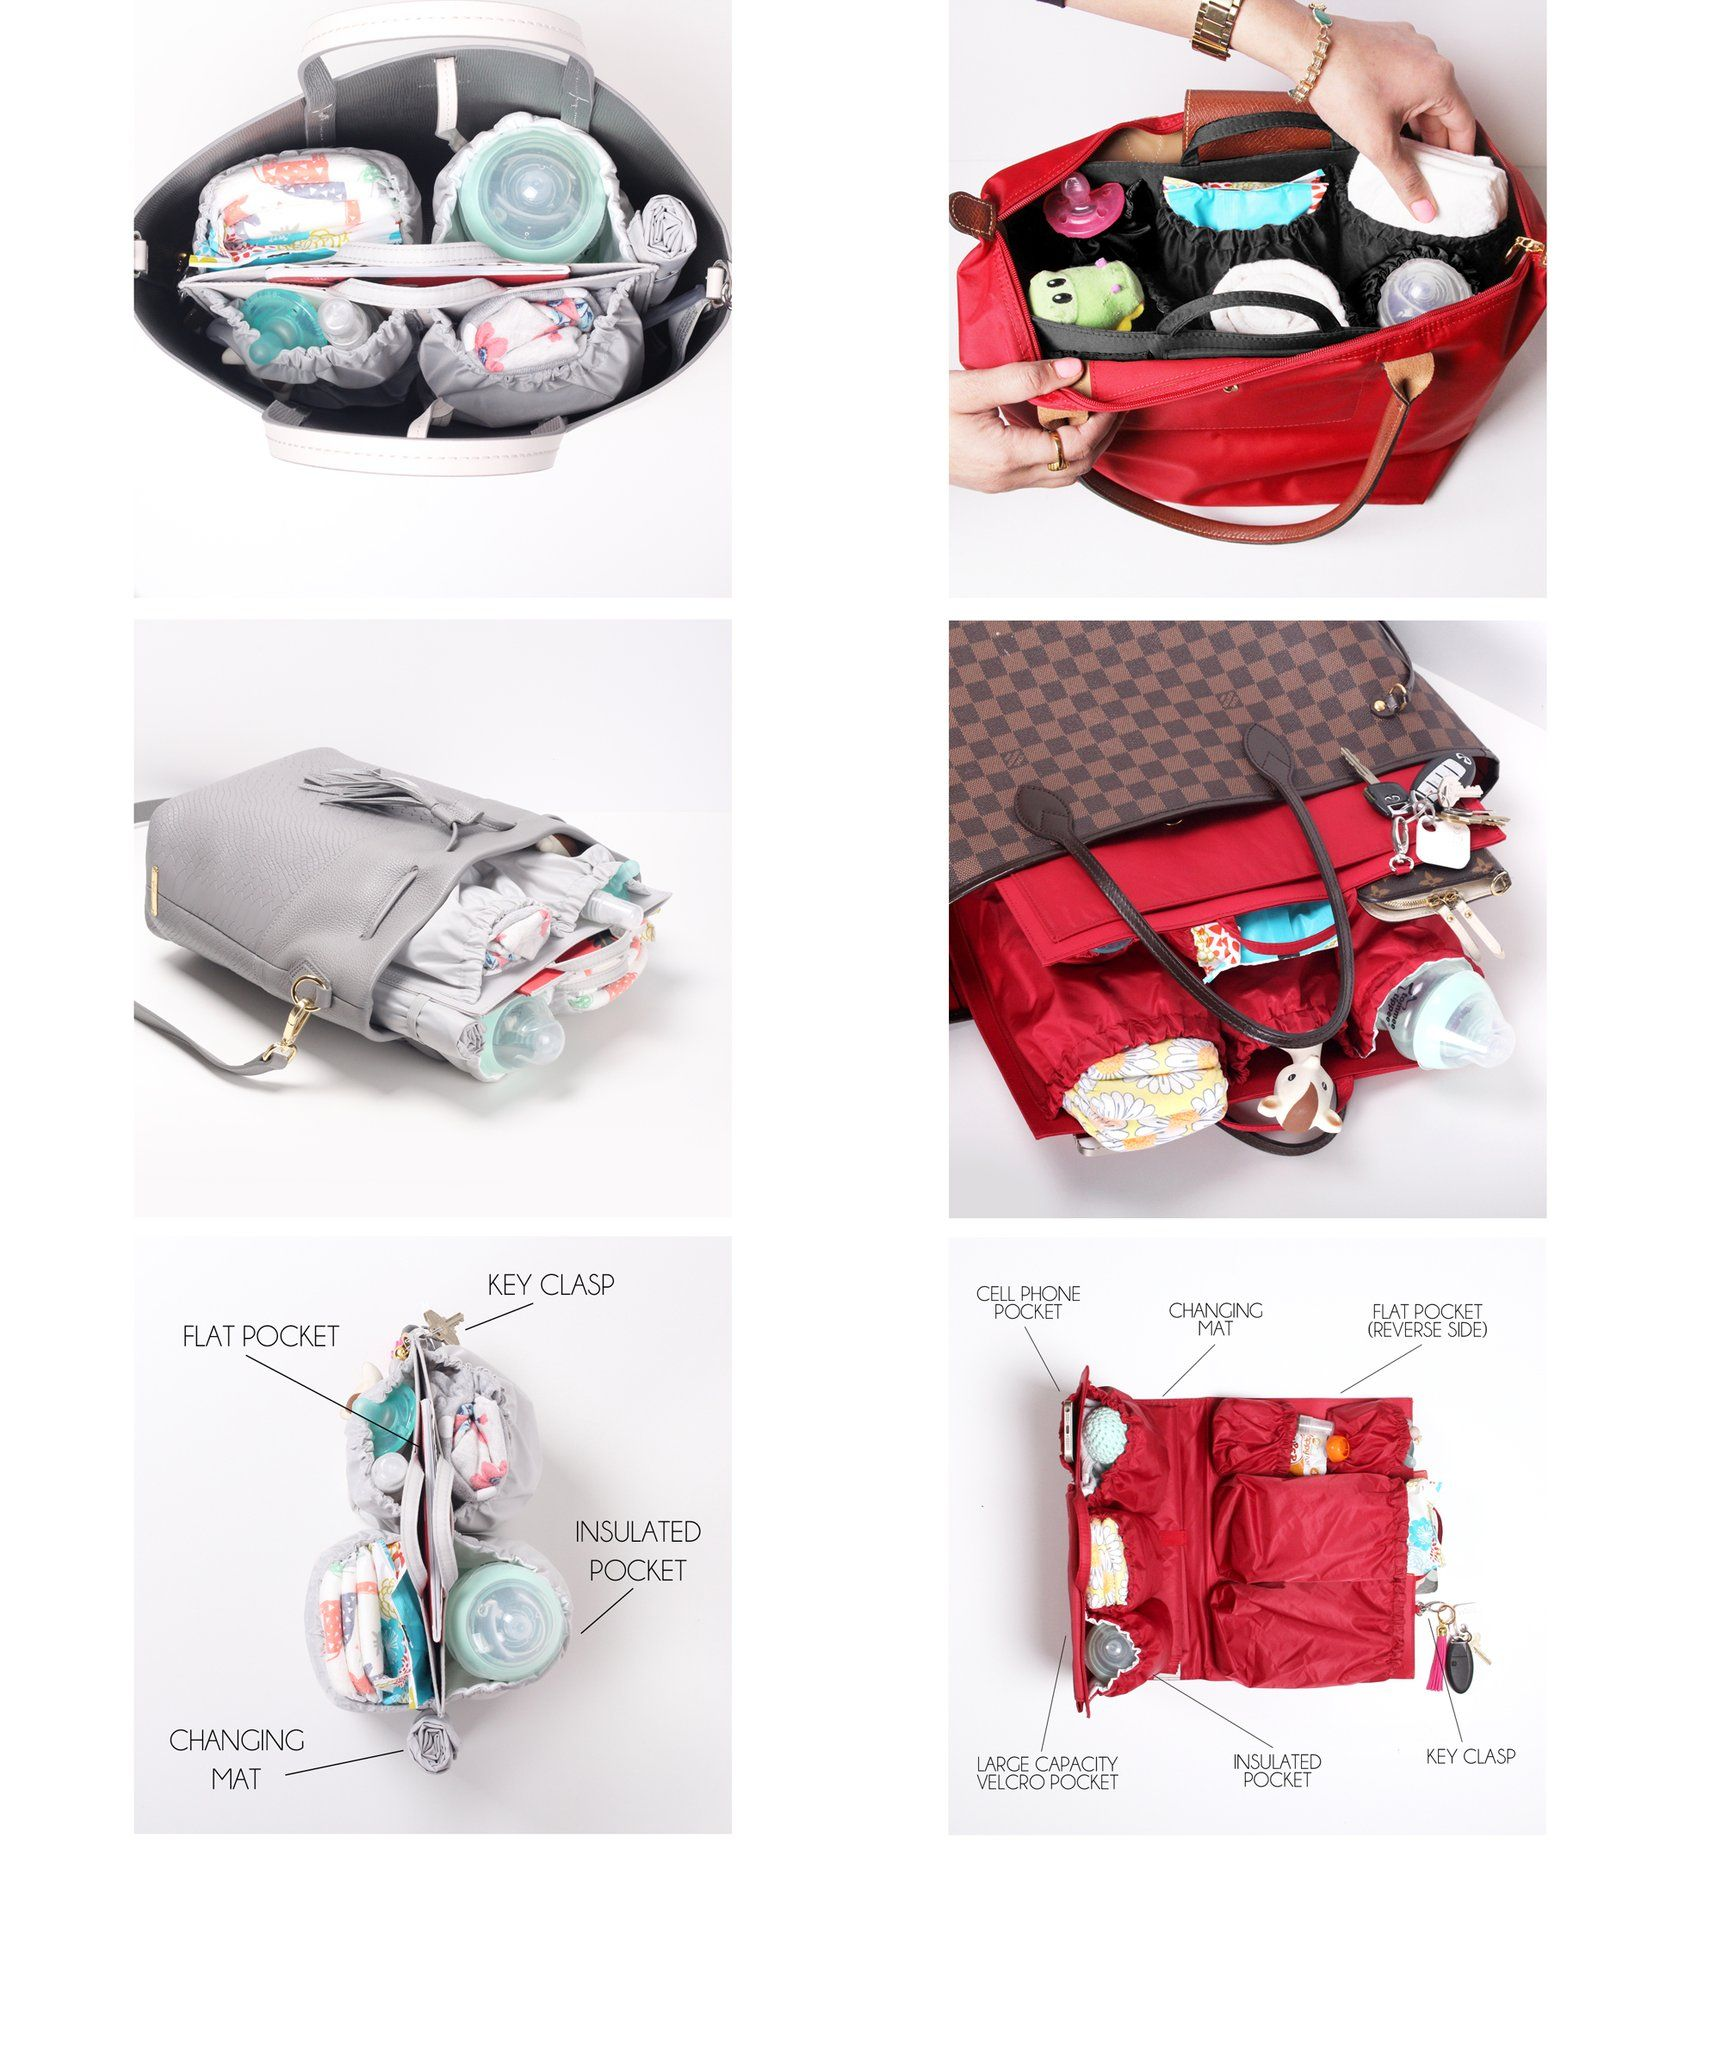 Order Processing Takes 1 3 Business Days Through 12 31 16 Totesavvy Mini Is The Modern Alternative To A Diaper Bag By Combining Inner Lining Of